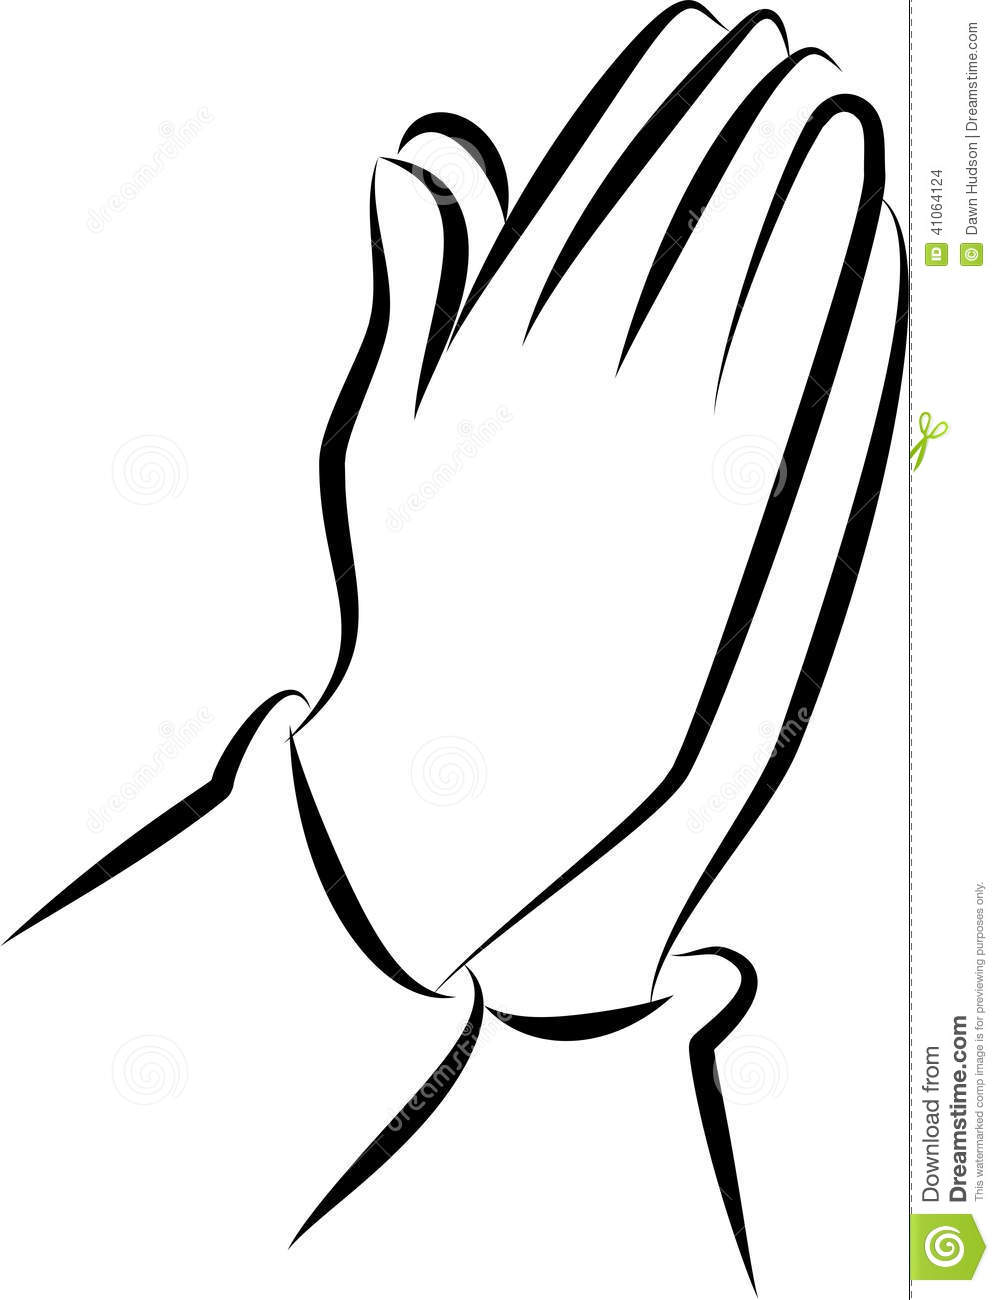 praying hands clip art stock illustration illustration of faith rh dreamstime com praying hands clip art free black and white praying hands clip art black and white